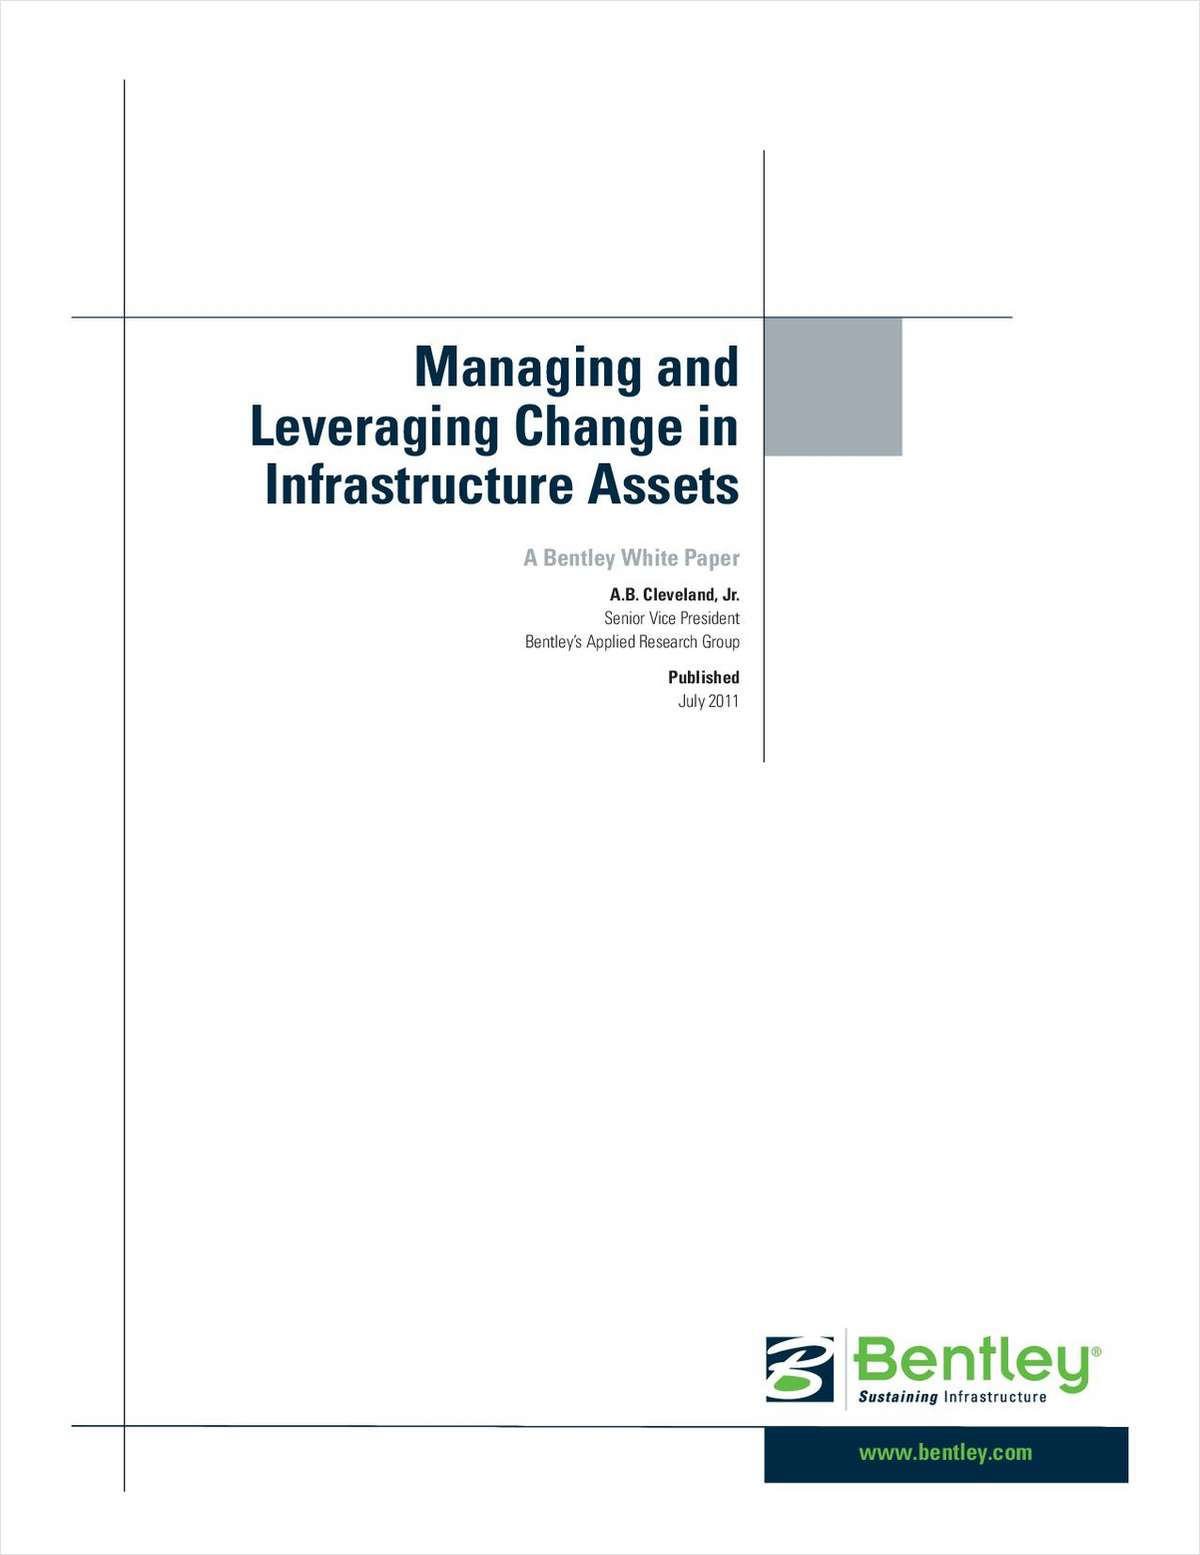 Managing and Leveraging Change in Infrastructure Assets